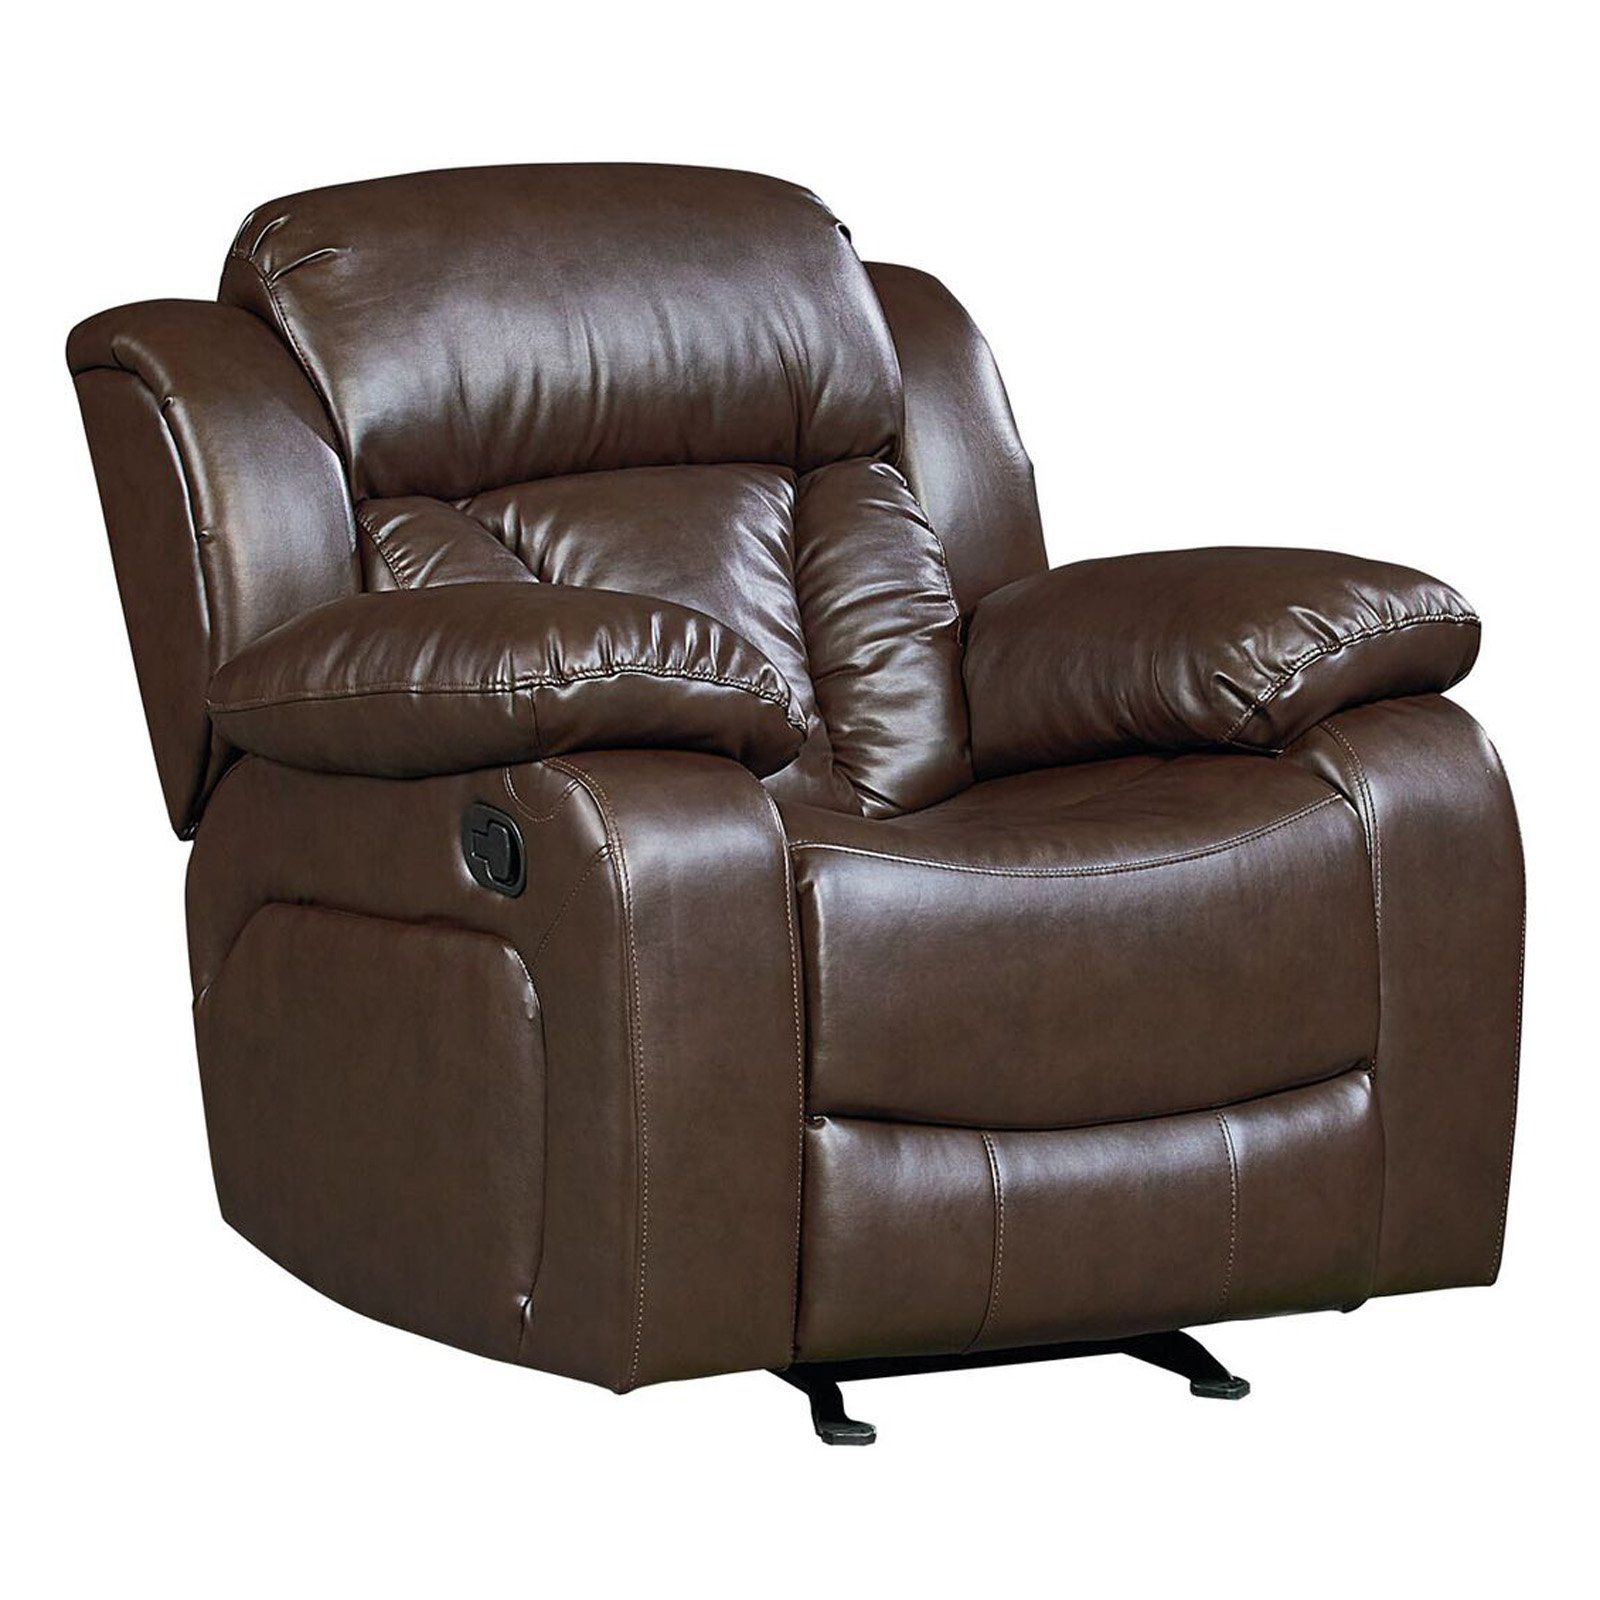 Standard Manufacturing Co. Inc. Northshore Recliner Glider